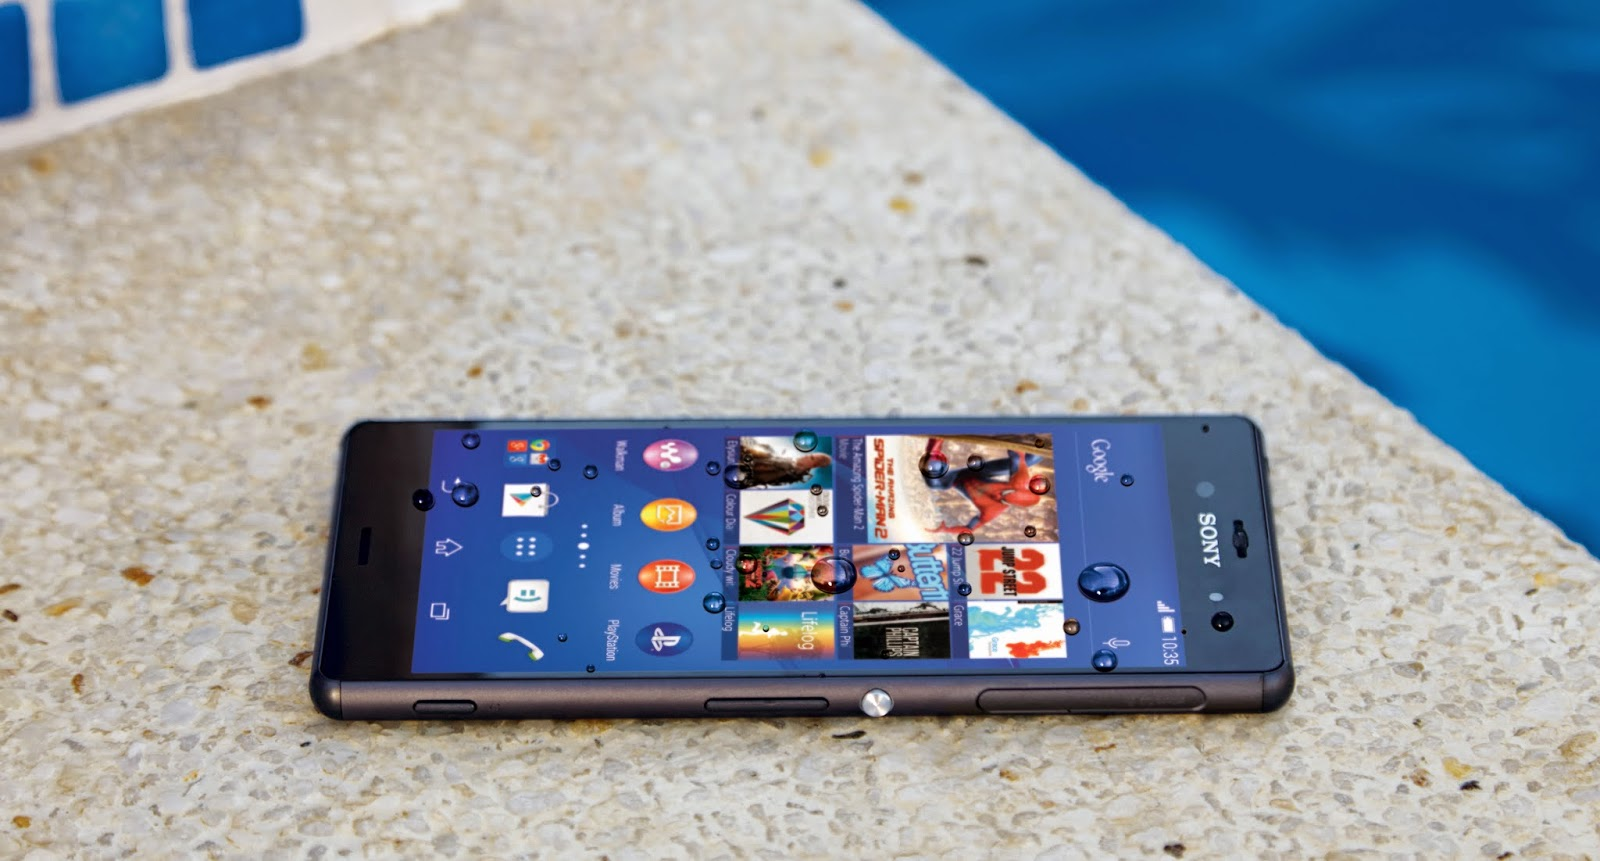 Sony Xperia Z3, Smartphone Tangguh Upgrade Android Lolipop